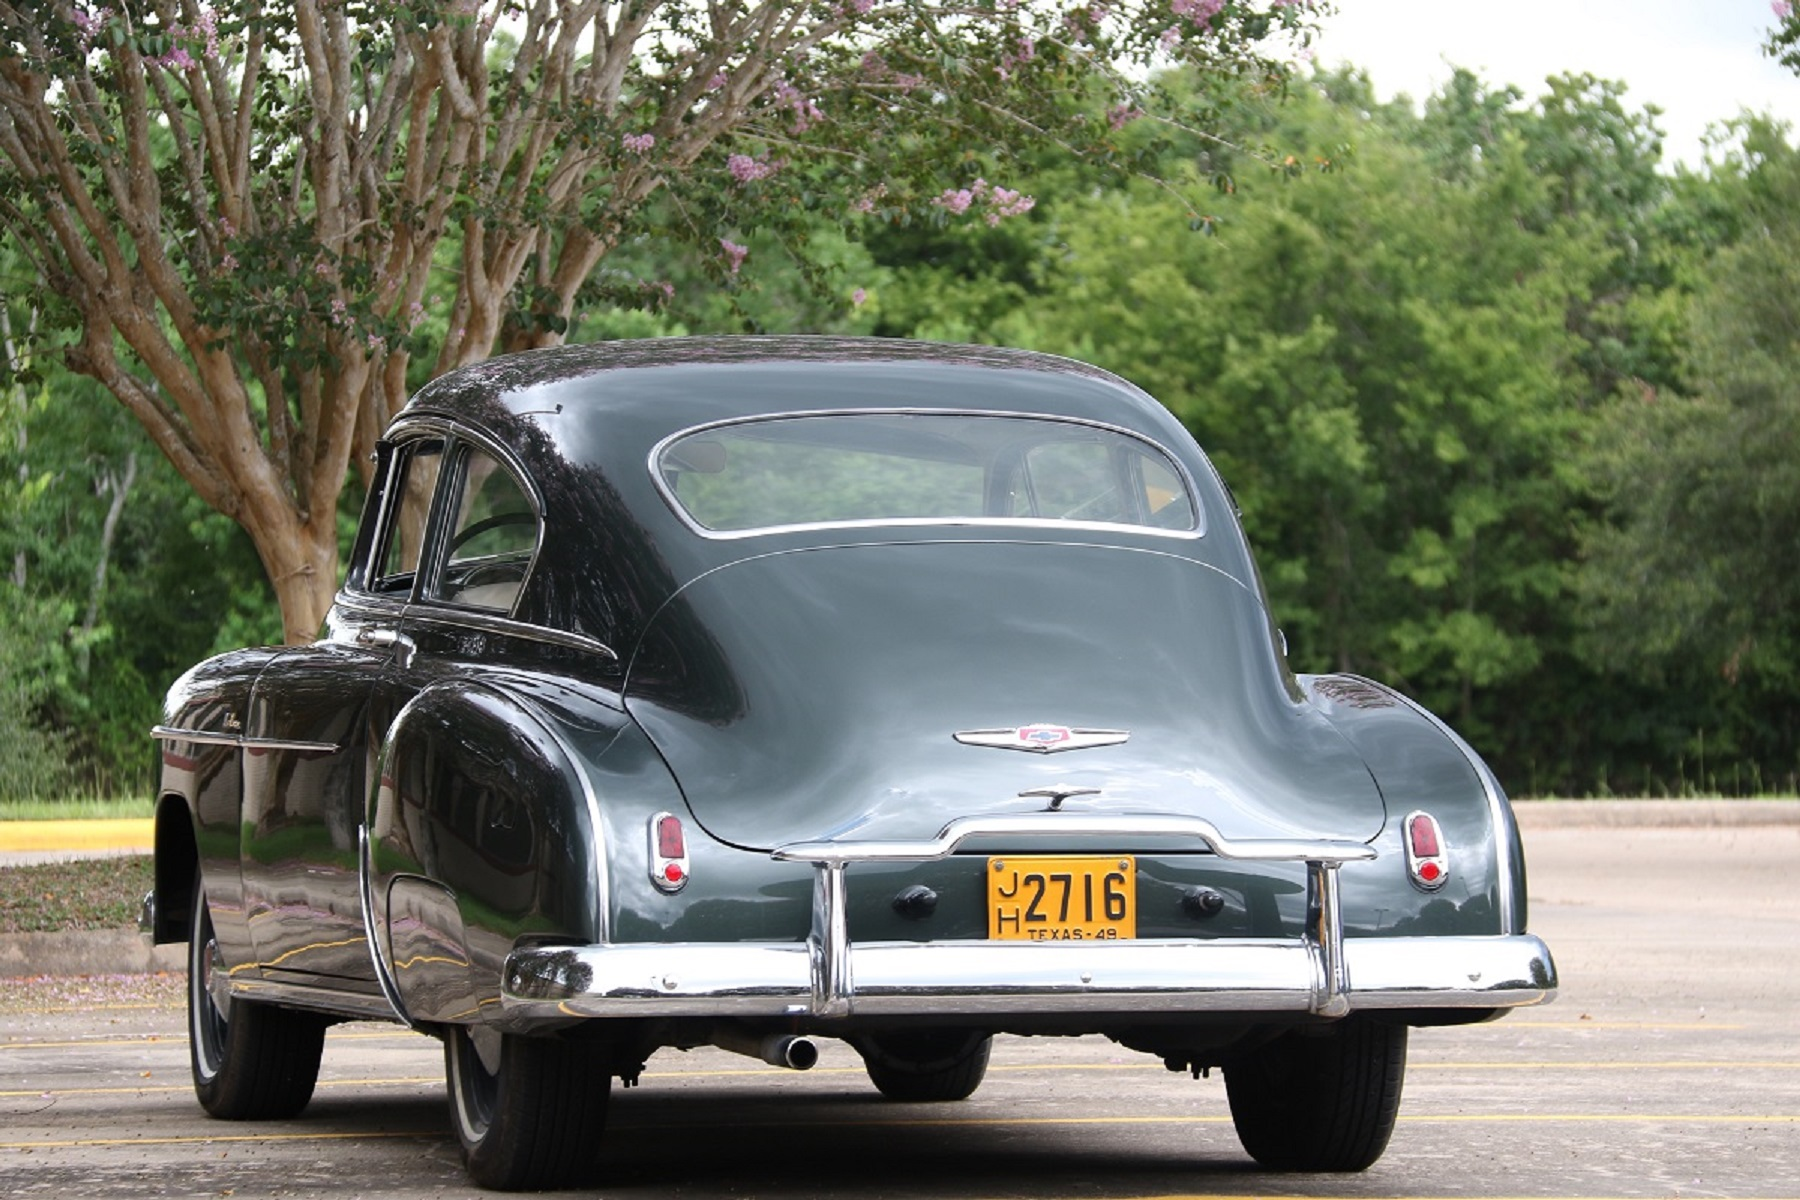 1949 Chevrolet: The Fastback Fleetline DeLuxe - Classic